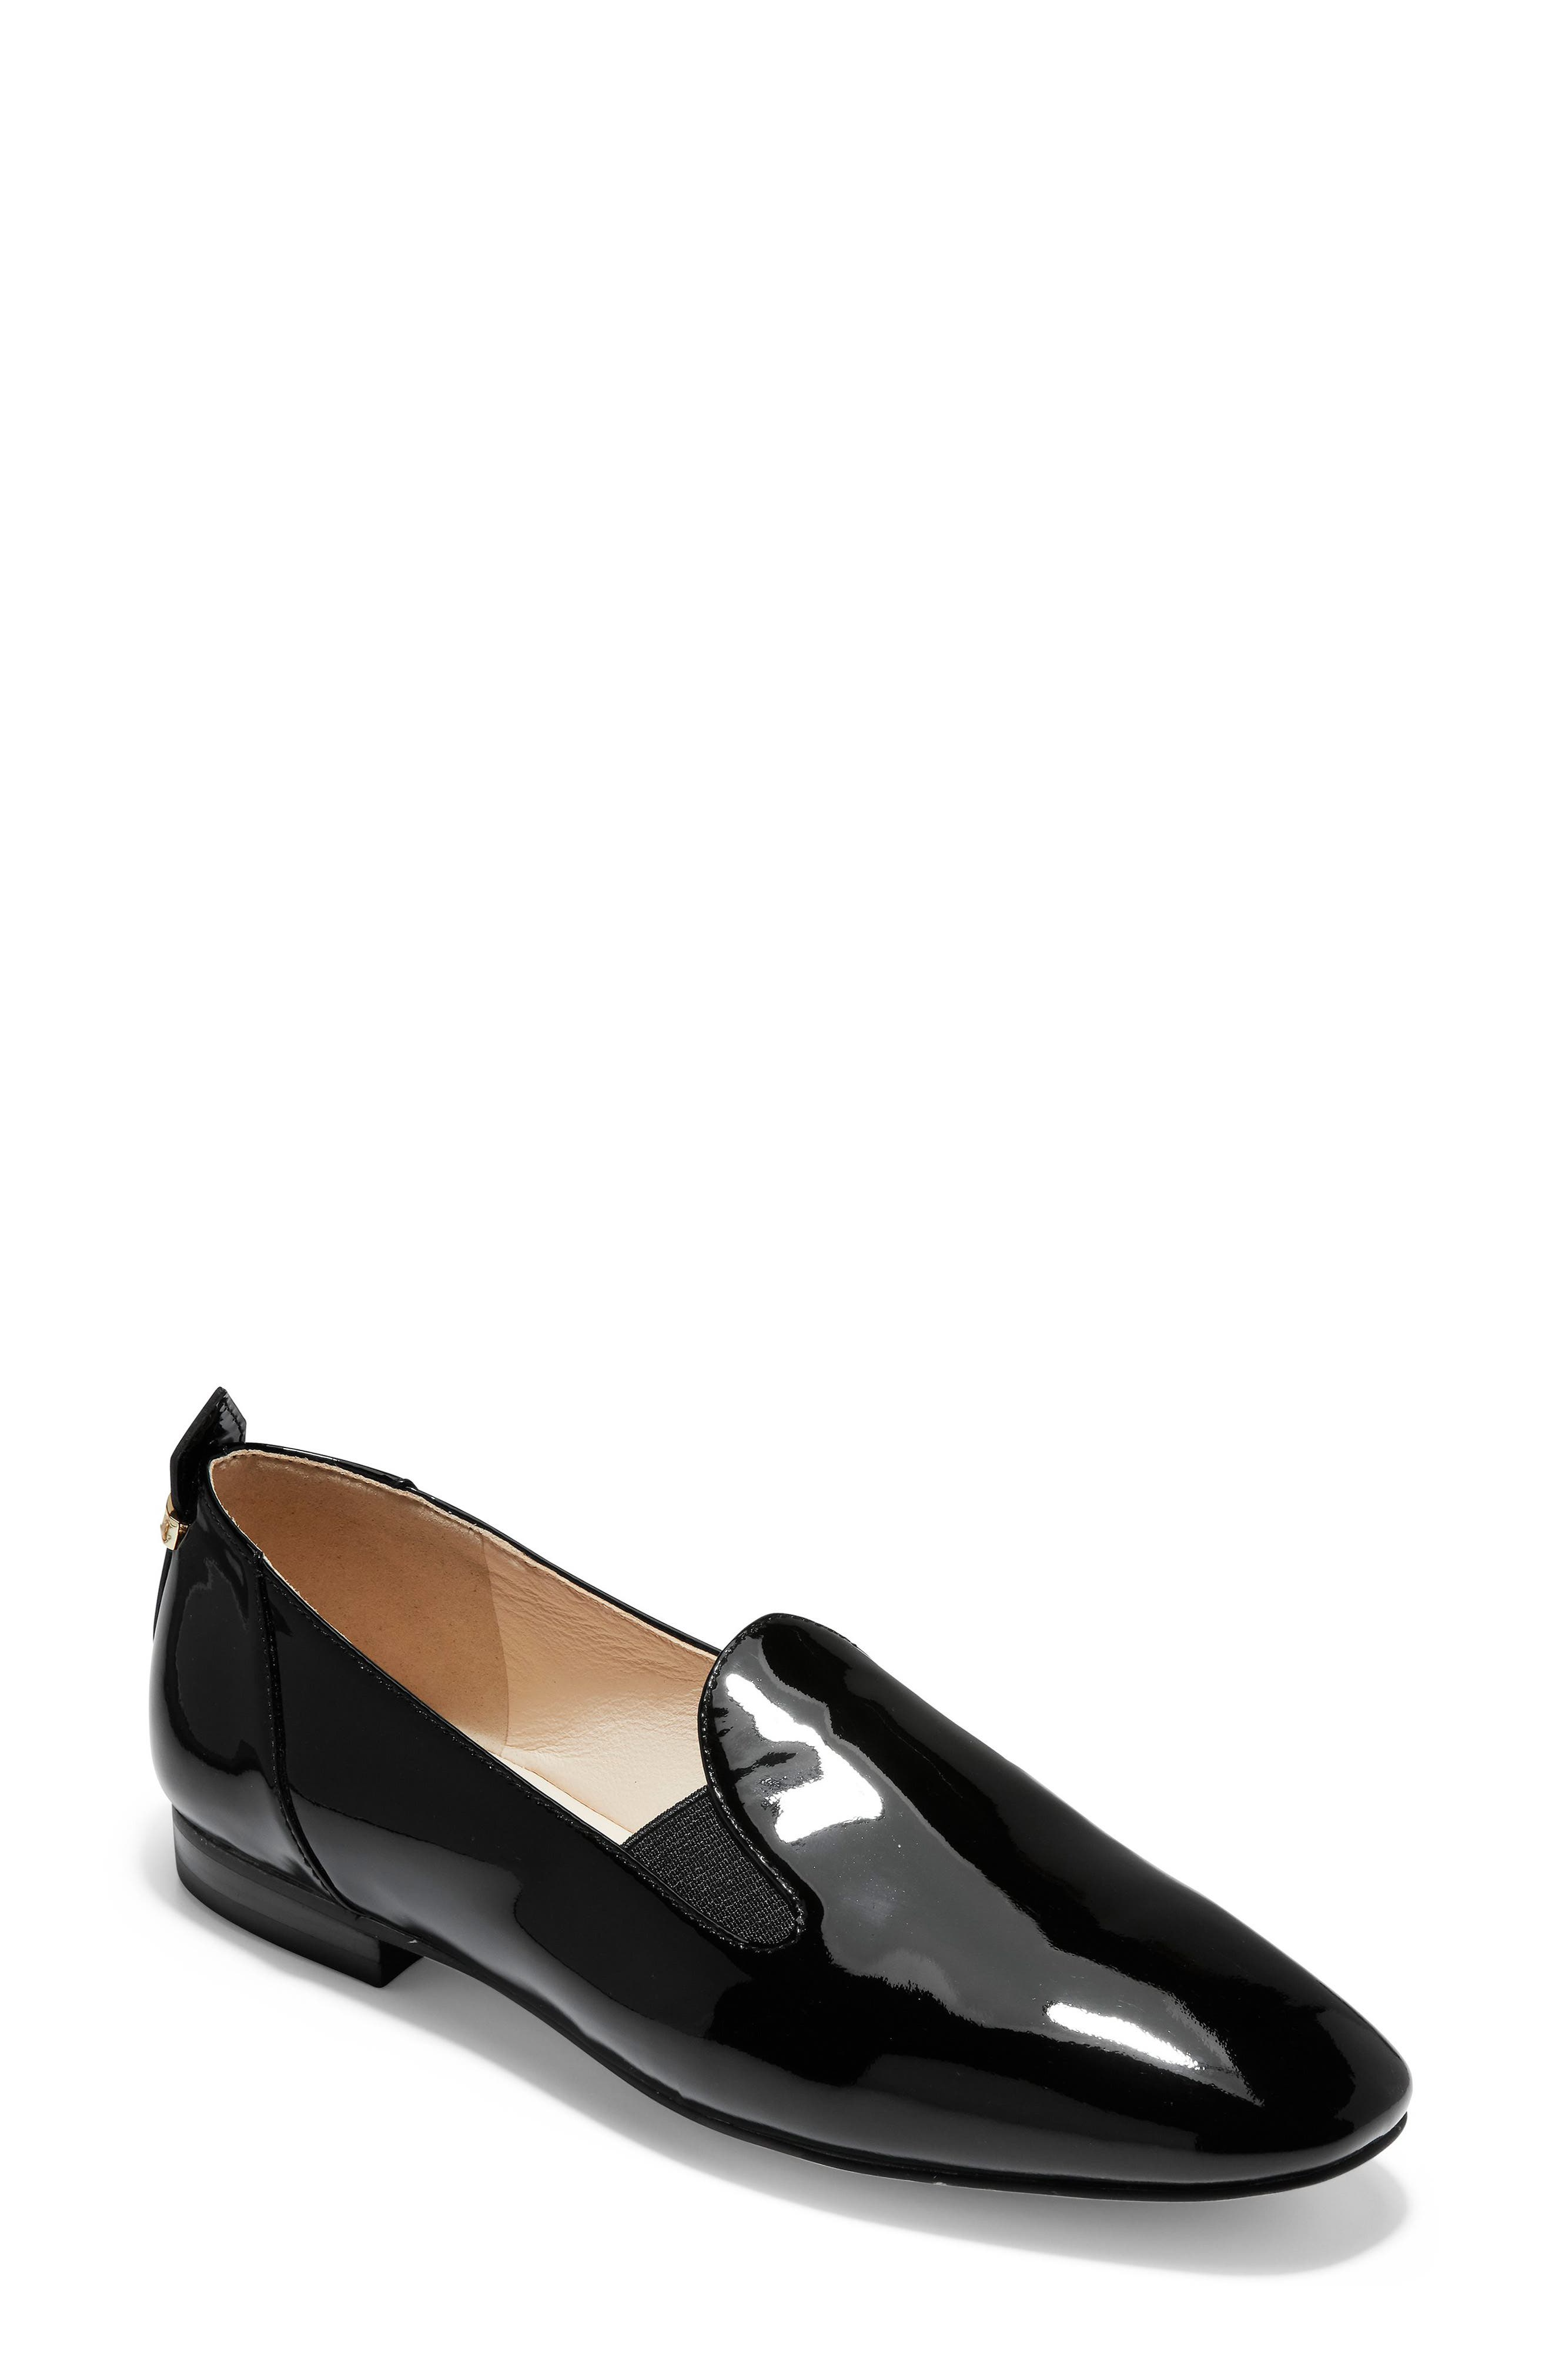 COLE HAAN, Portia Loafer, Main thumbnail 1, color, BLACK PATENT LEATHER